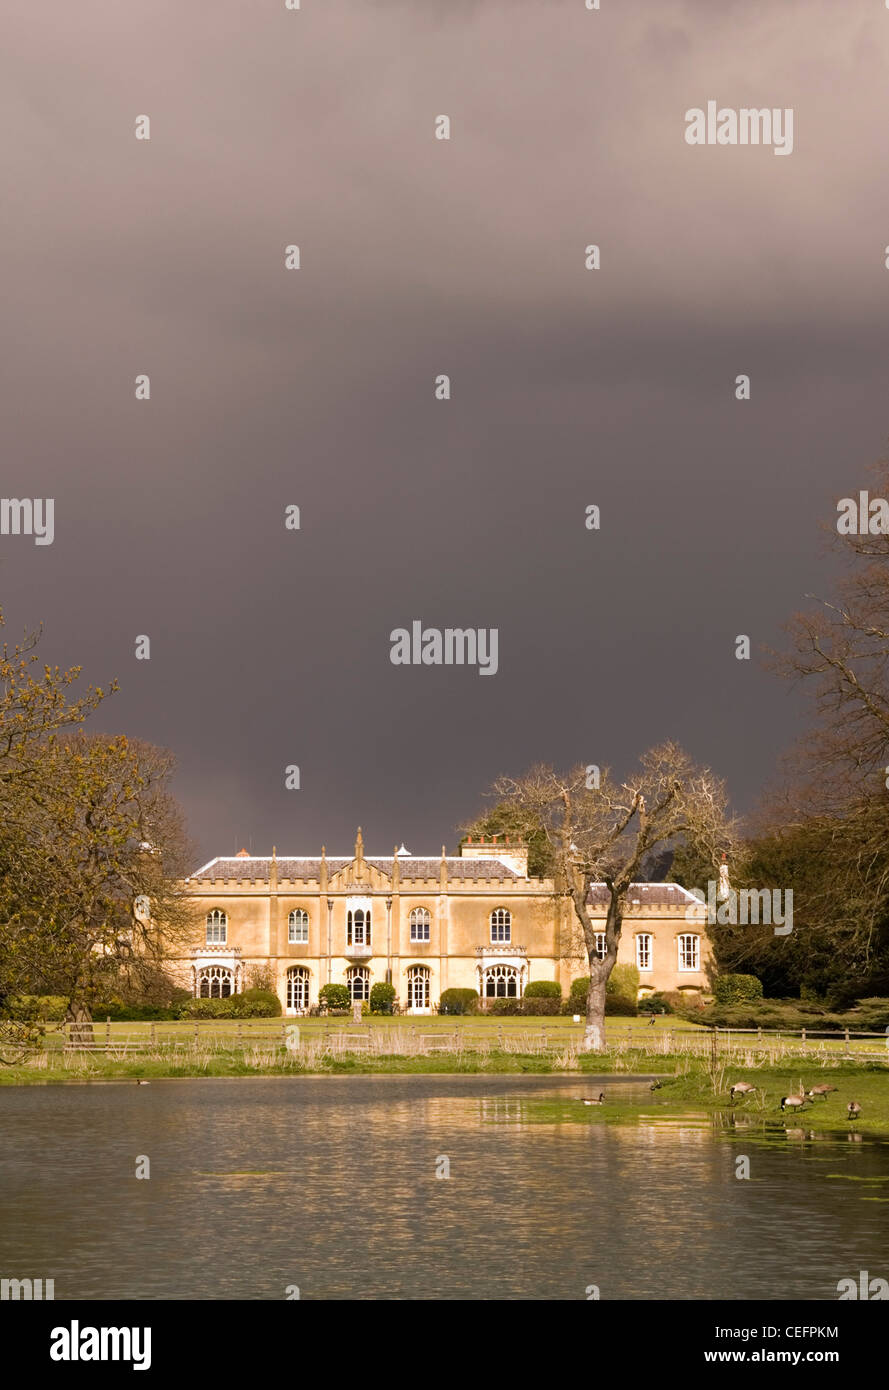 Great Missenden - Missenden Abbey - sun lit beneath storm clouds - reflected in a lake - Stock Image